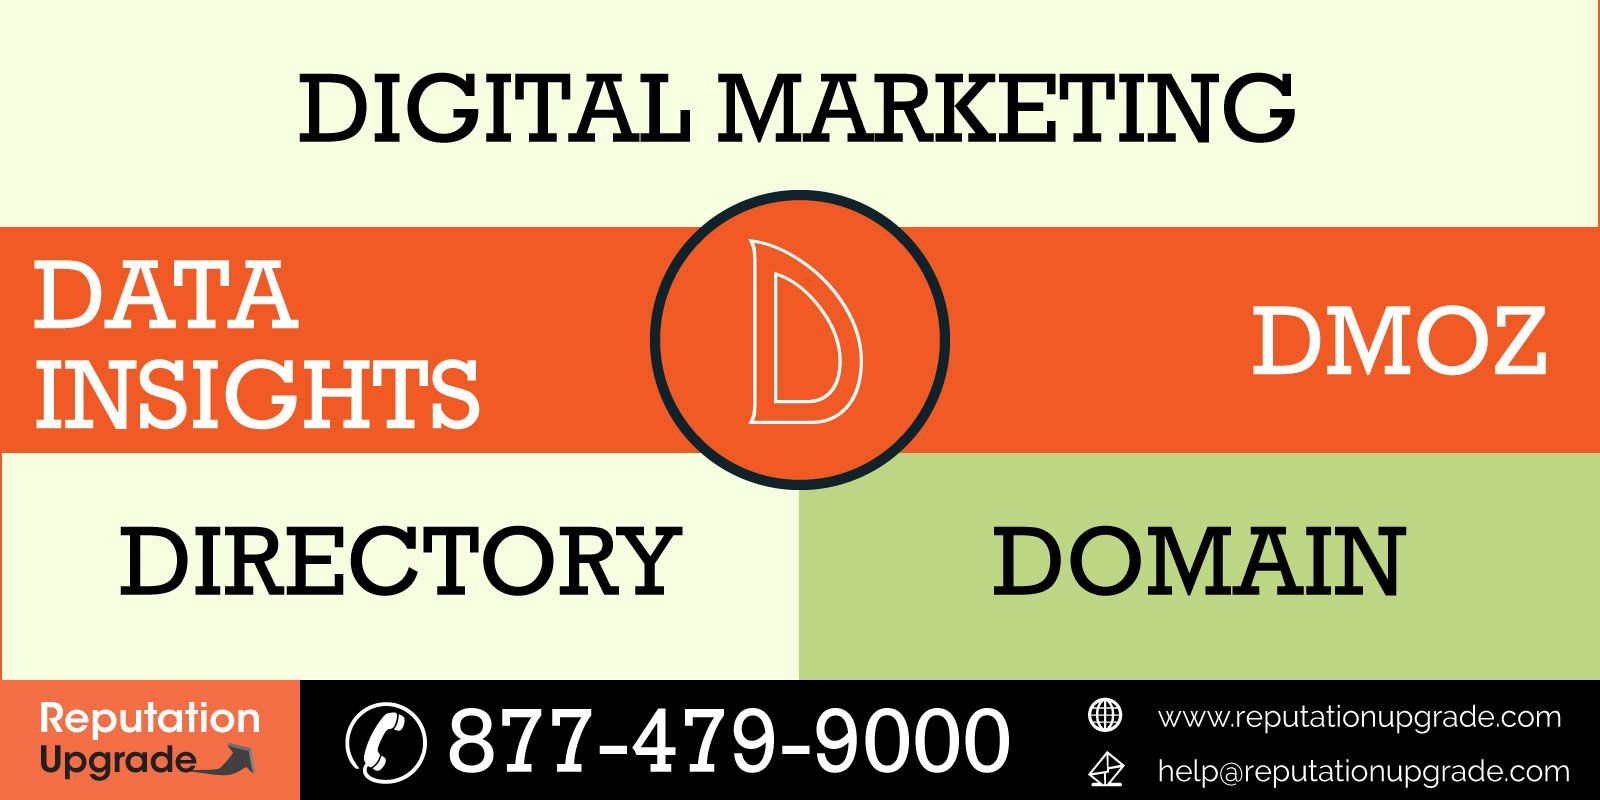 Grab this excellent opportunity and work with us to grow together. Digital Marketing Glossary: See what #D stands for in ...